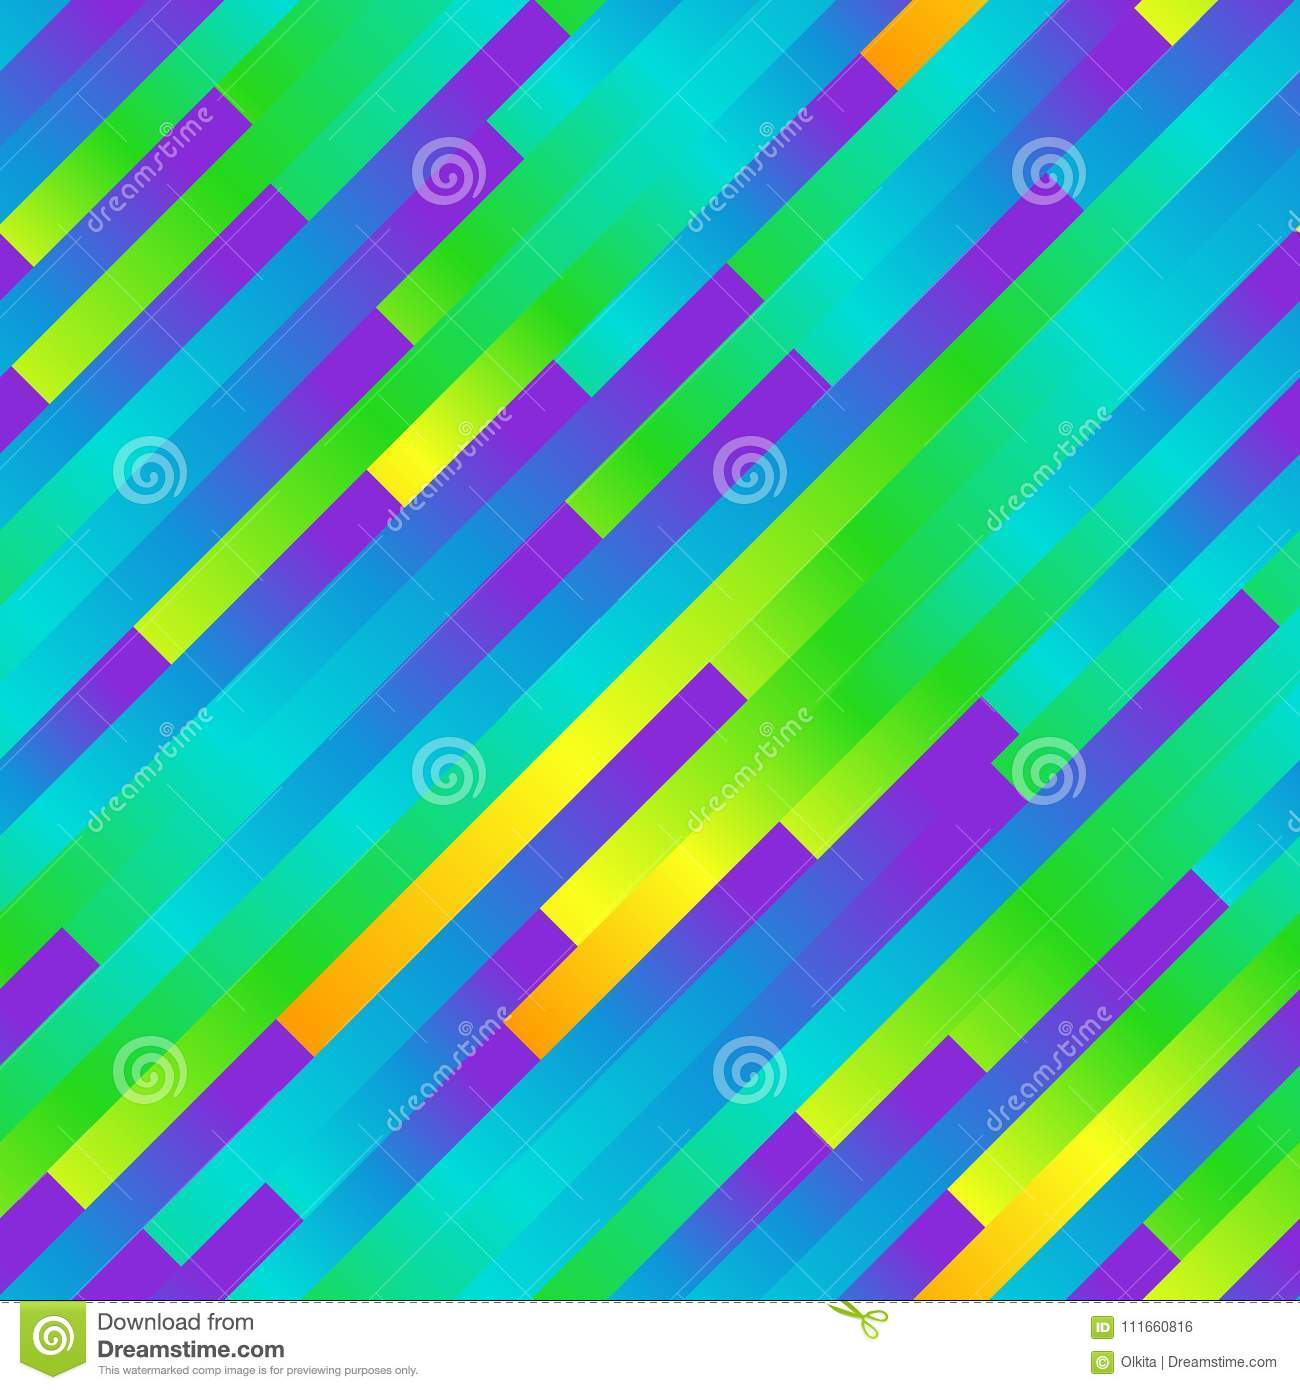 Seamless Rainbow Abstract Pattern Geometric Print Composed Of Colored Strips Colorful Bright Lines Background Stock Vector Illustration Of Graphic Geometry 111660816